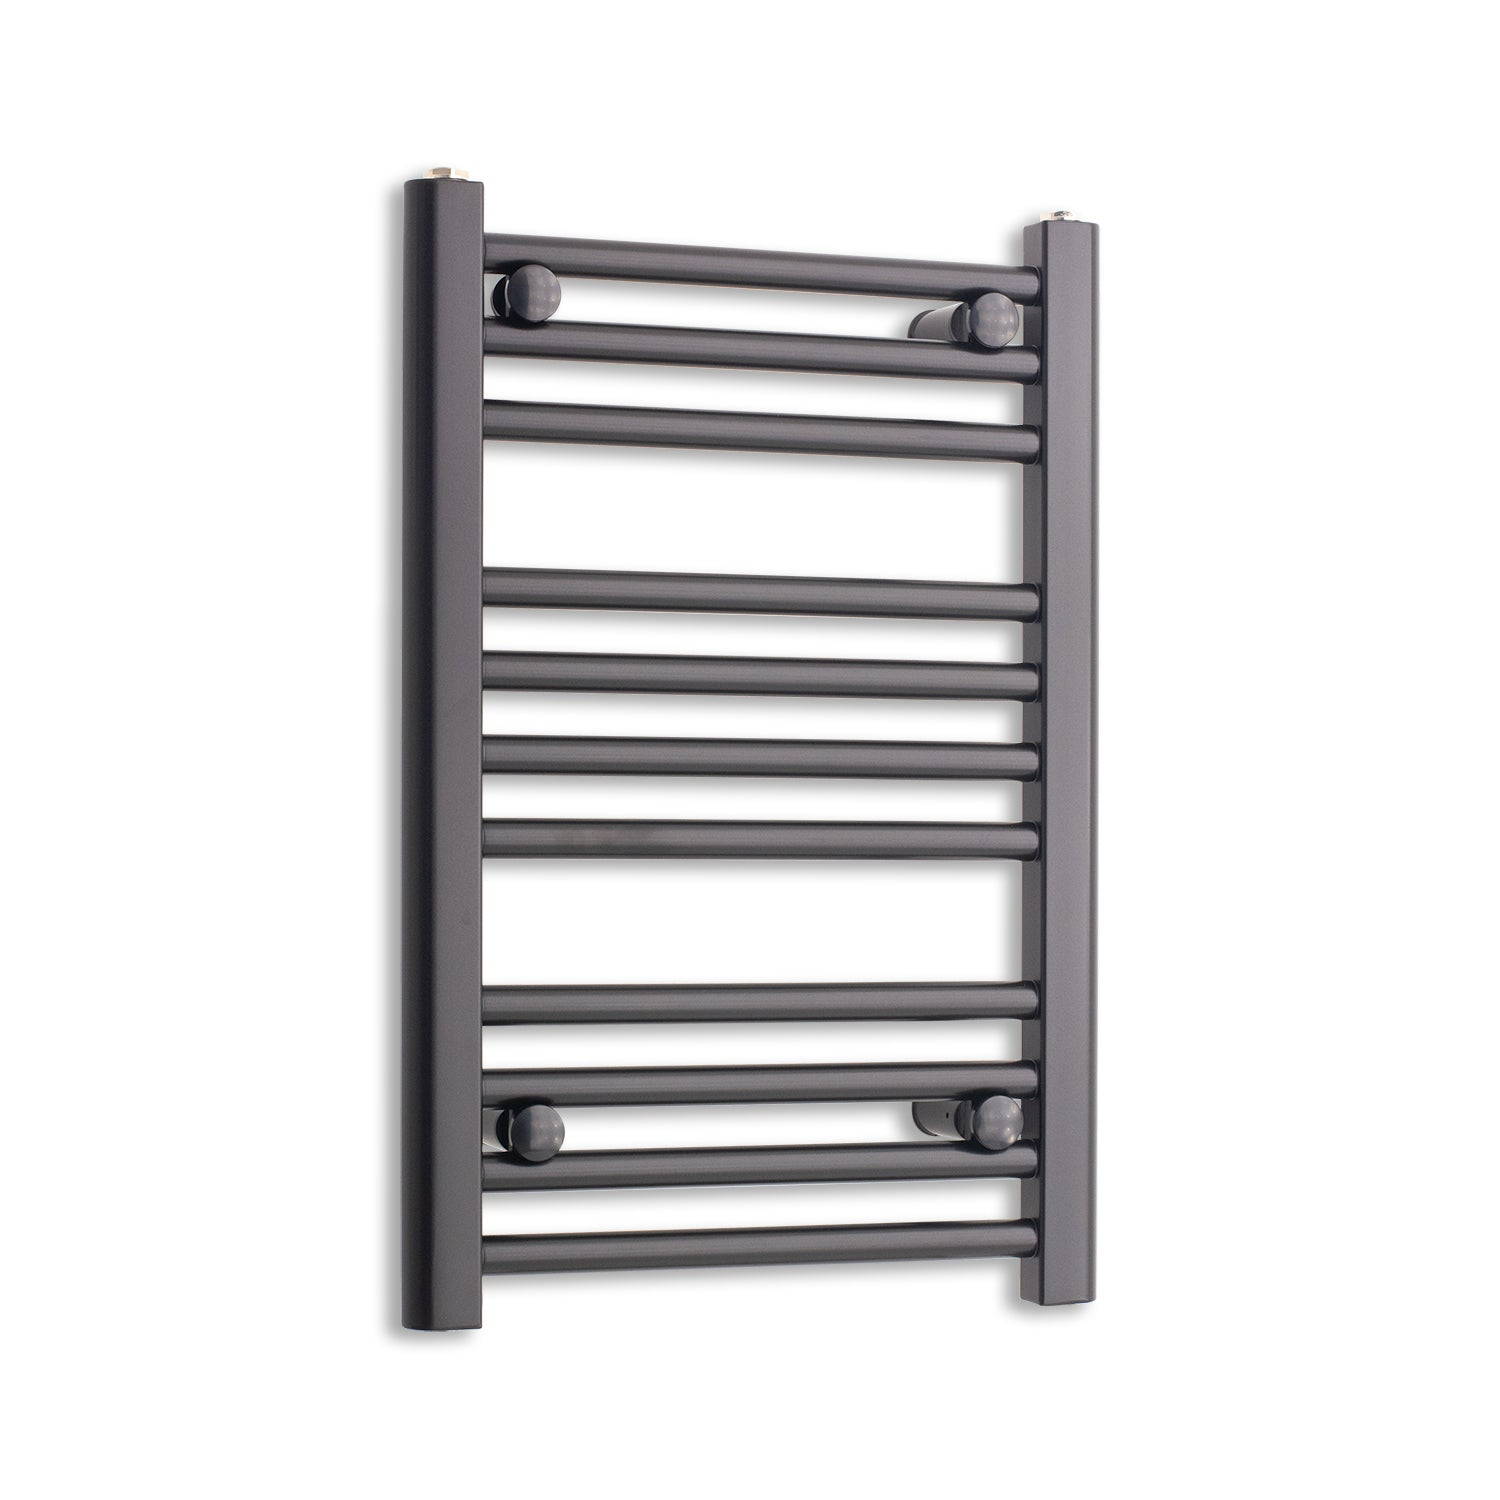 400mm Wide 600mm High Black Towel Rail Radiator